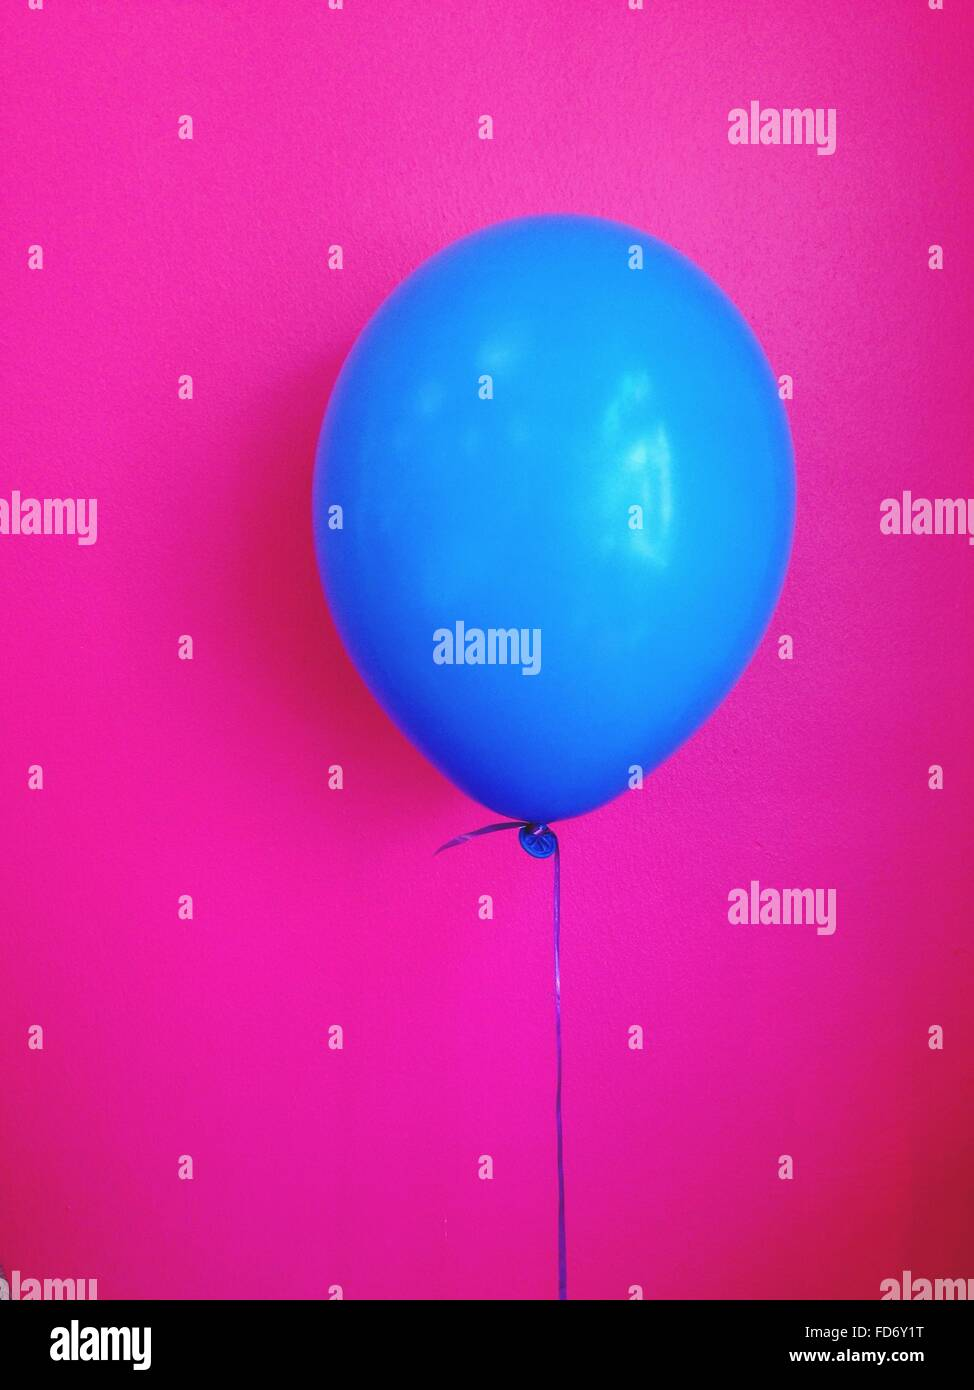 Close-Up Of Balloon - Stock Image